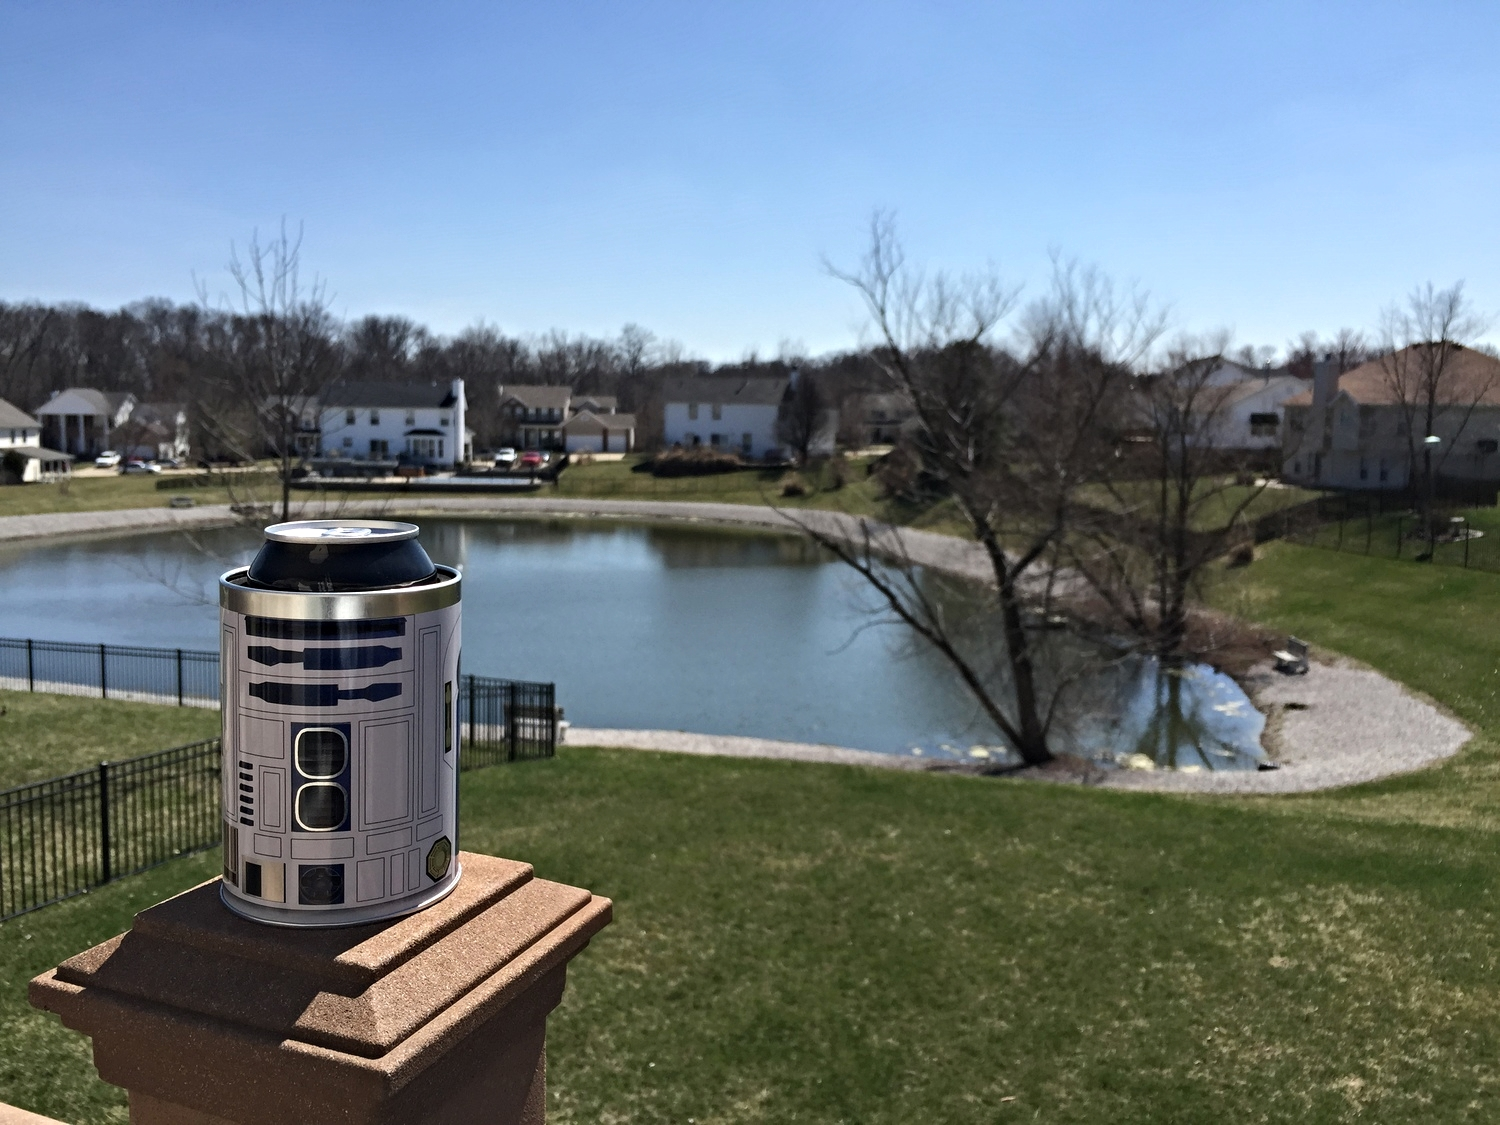 Enjoying a Beverage with my Sweet R2-D2 koozie